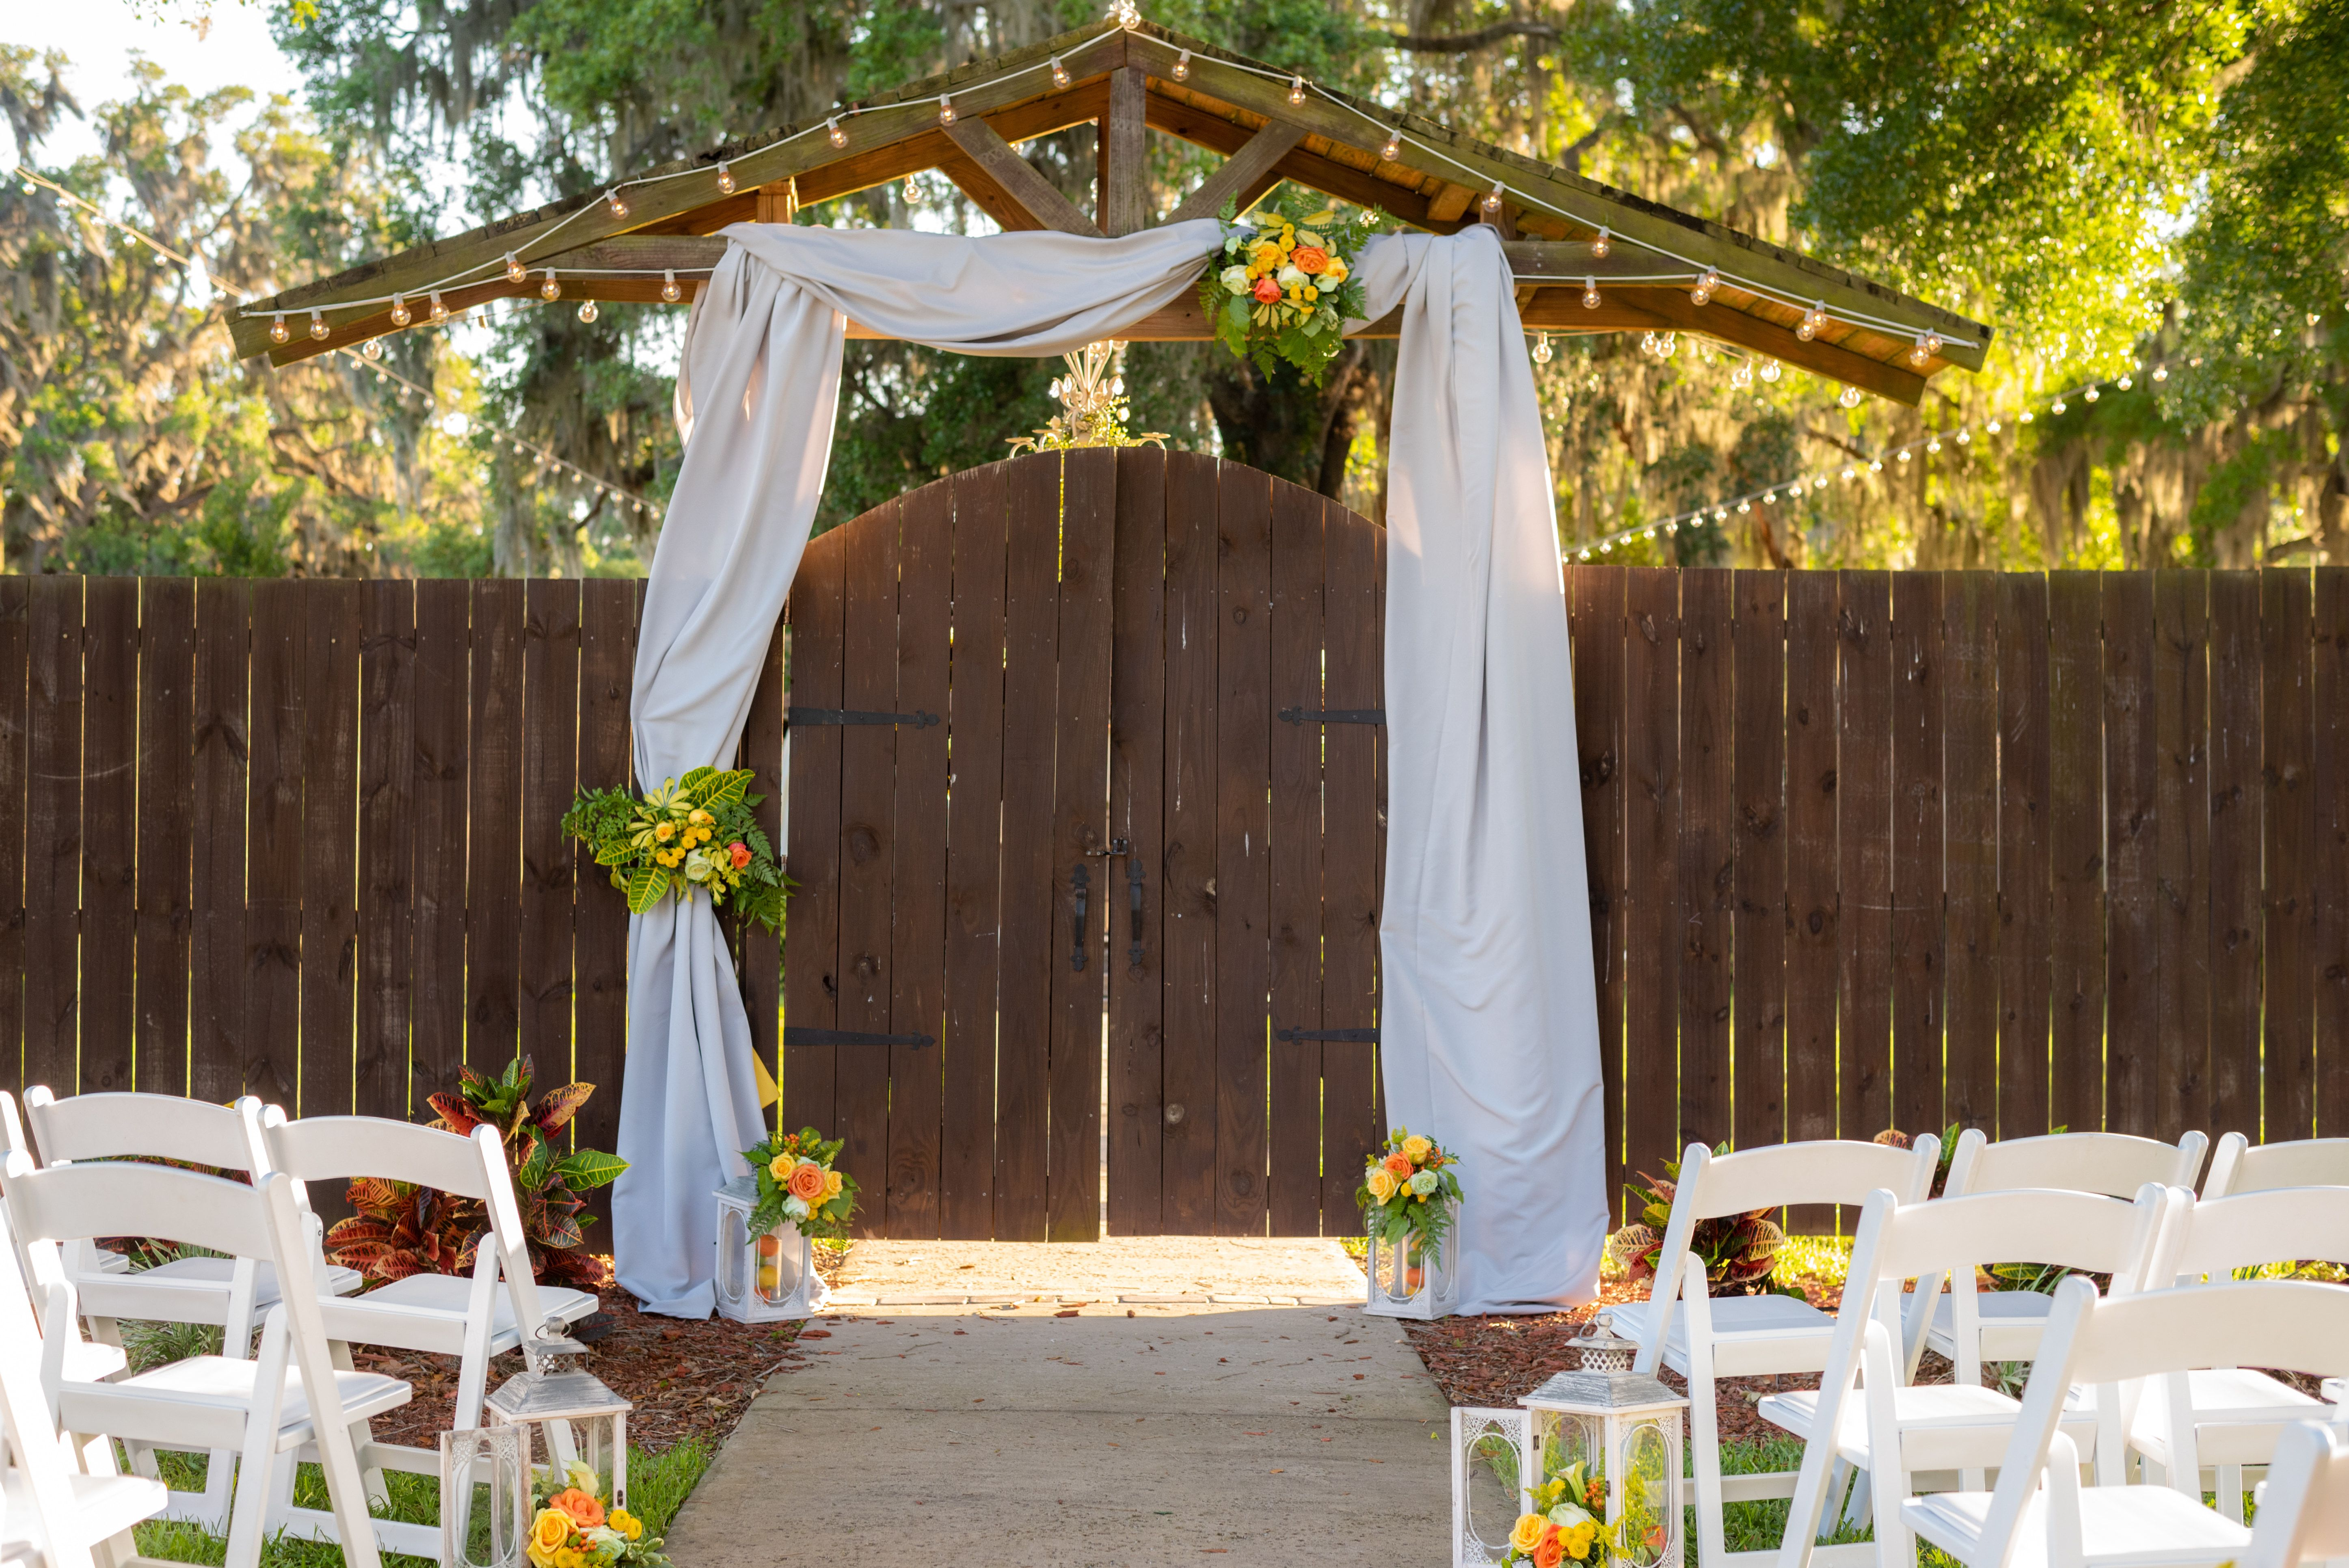 22+ White wedding chairs for rent info